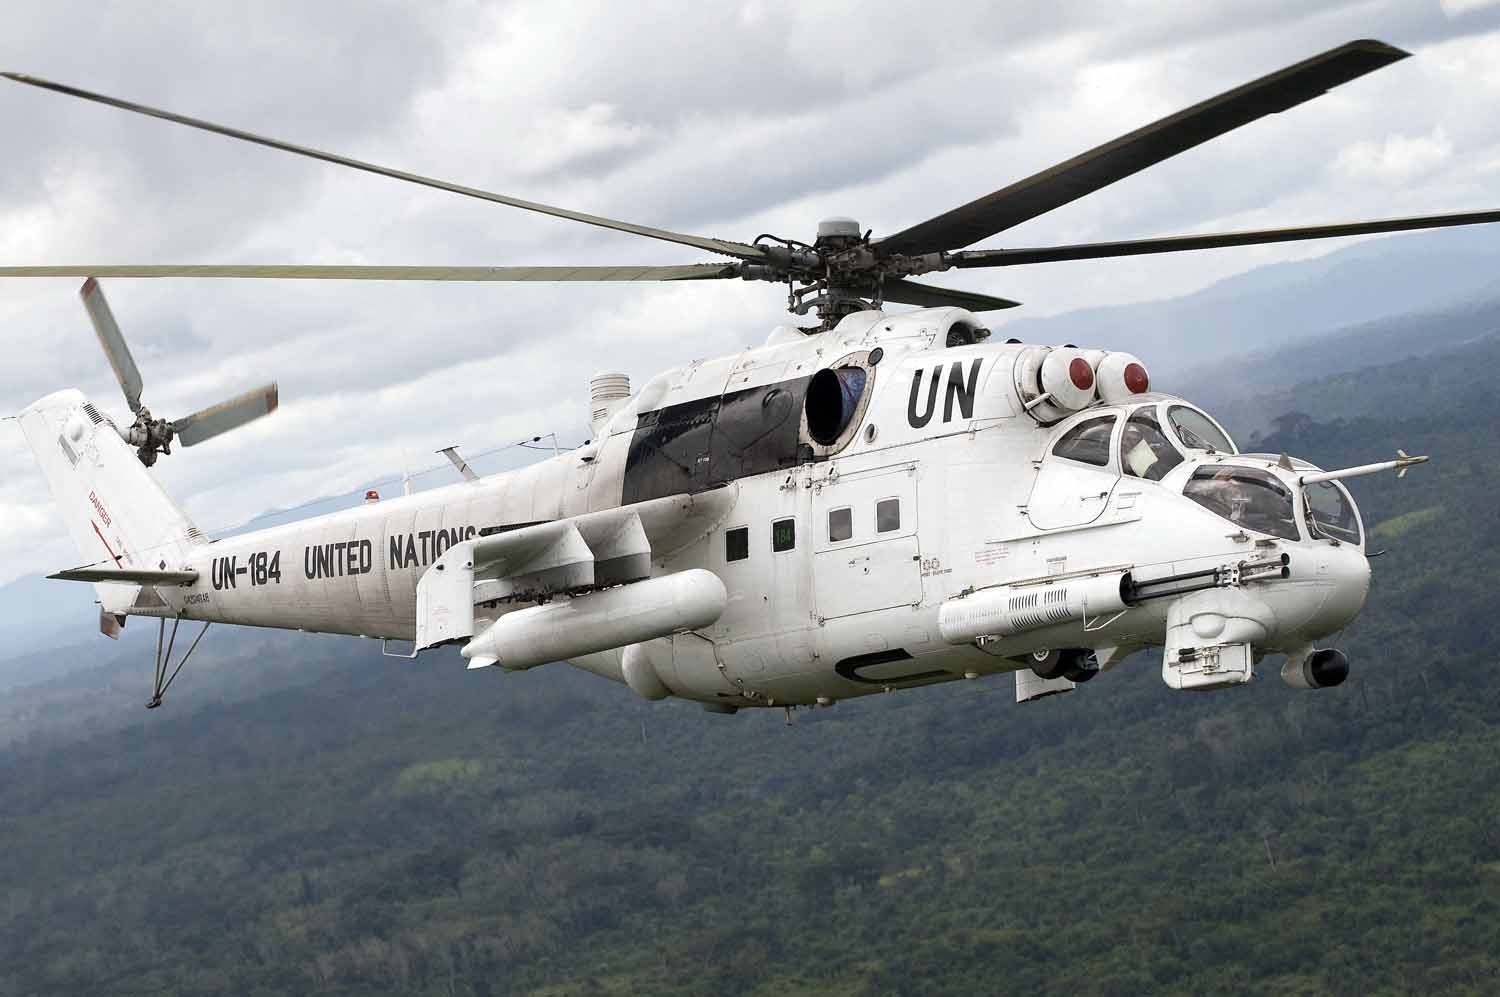 UN helicopter